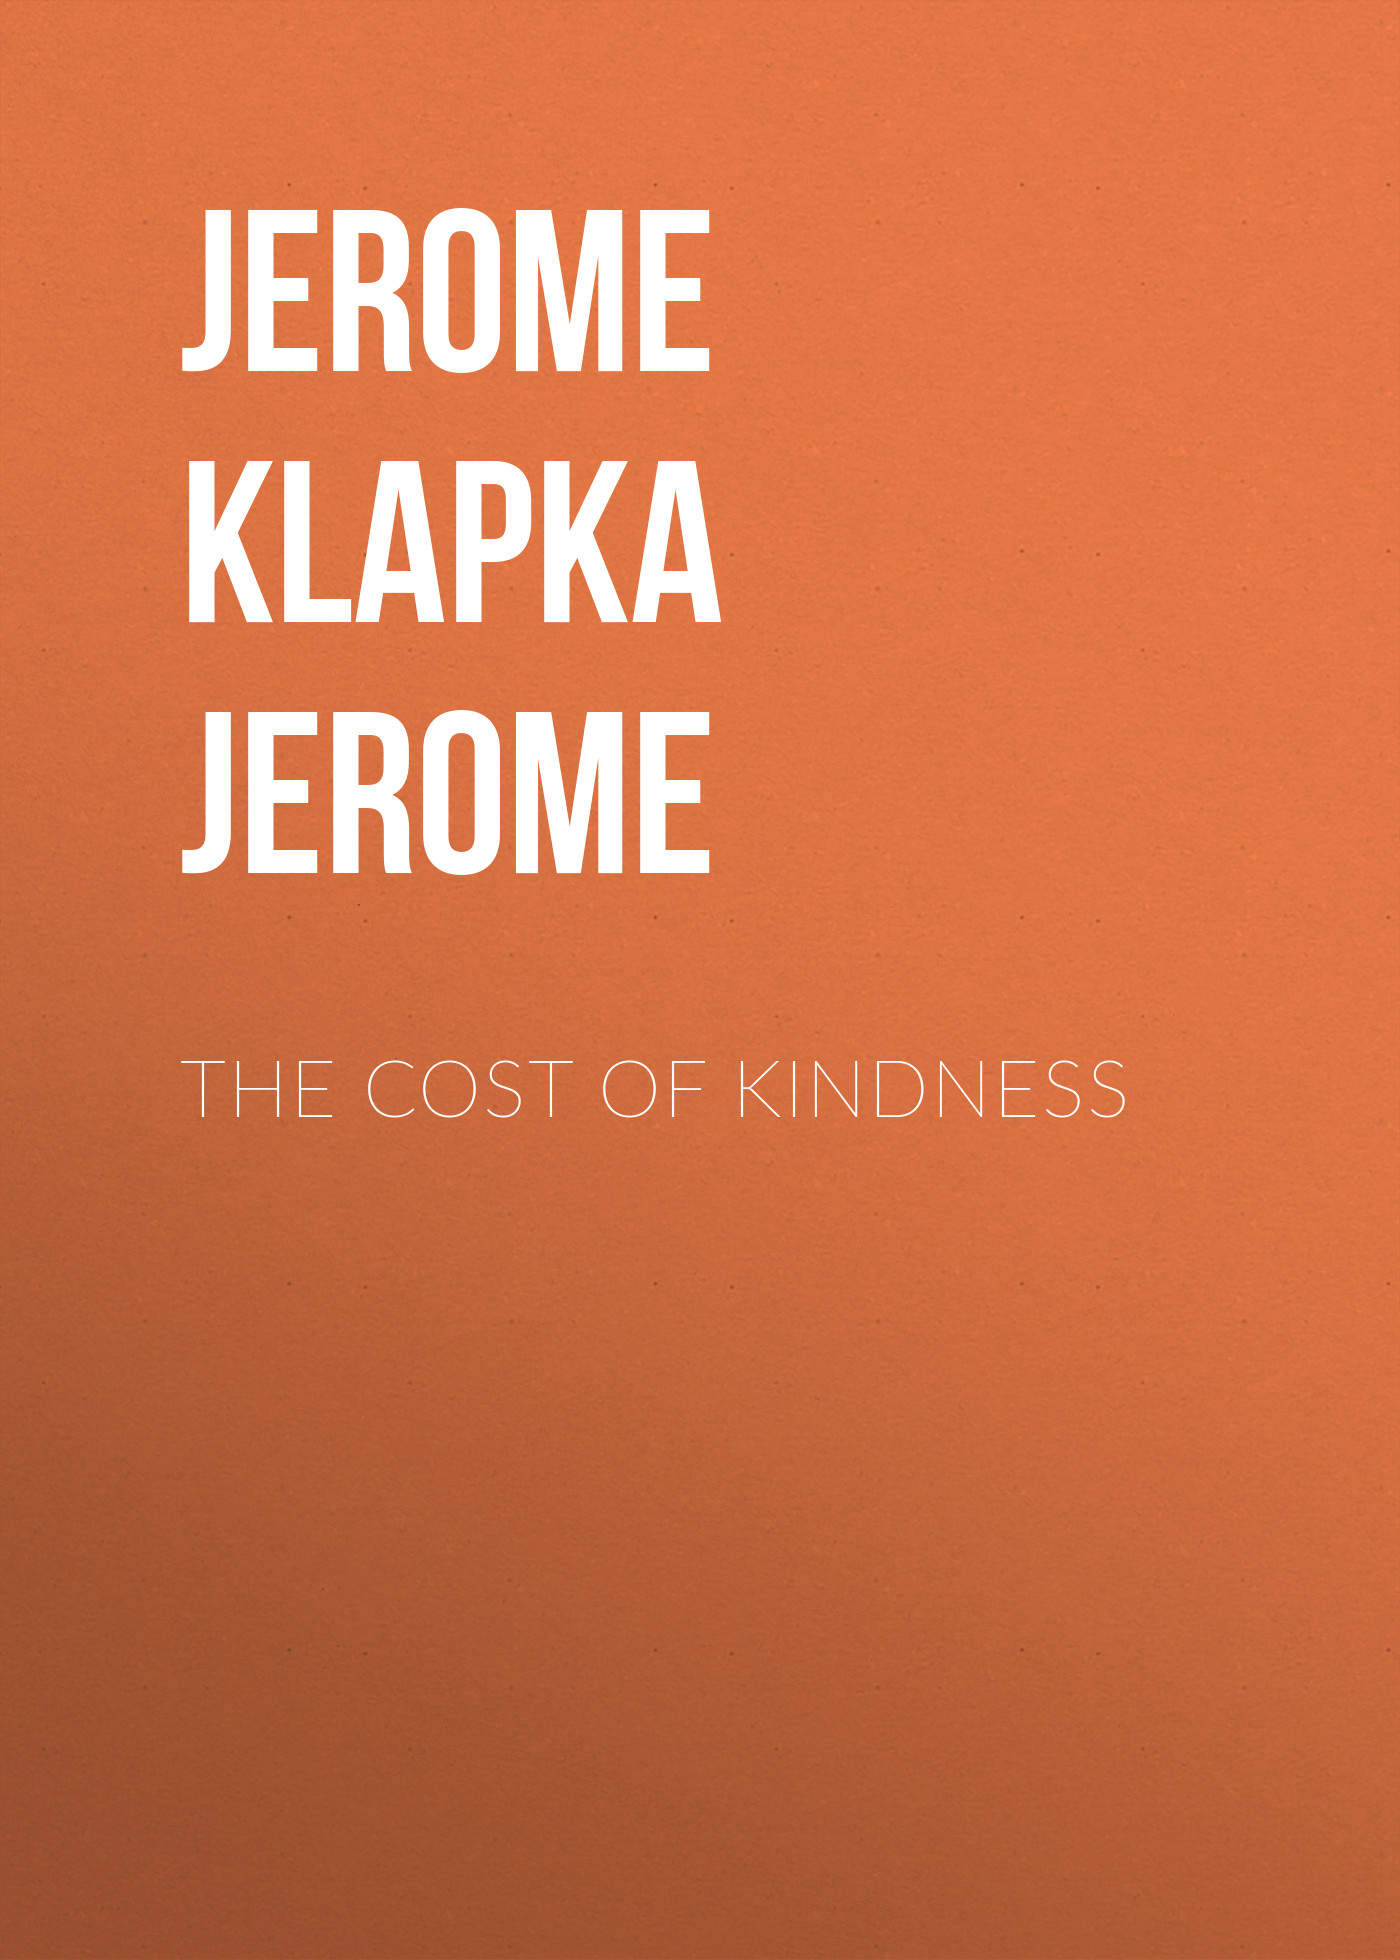 Джером Клапка Джером The Cost of Kindness freight cost controlling